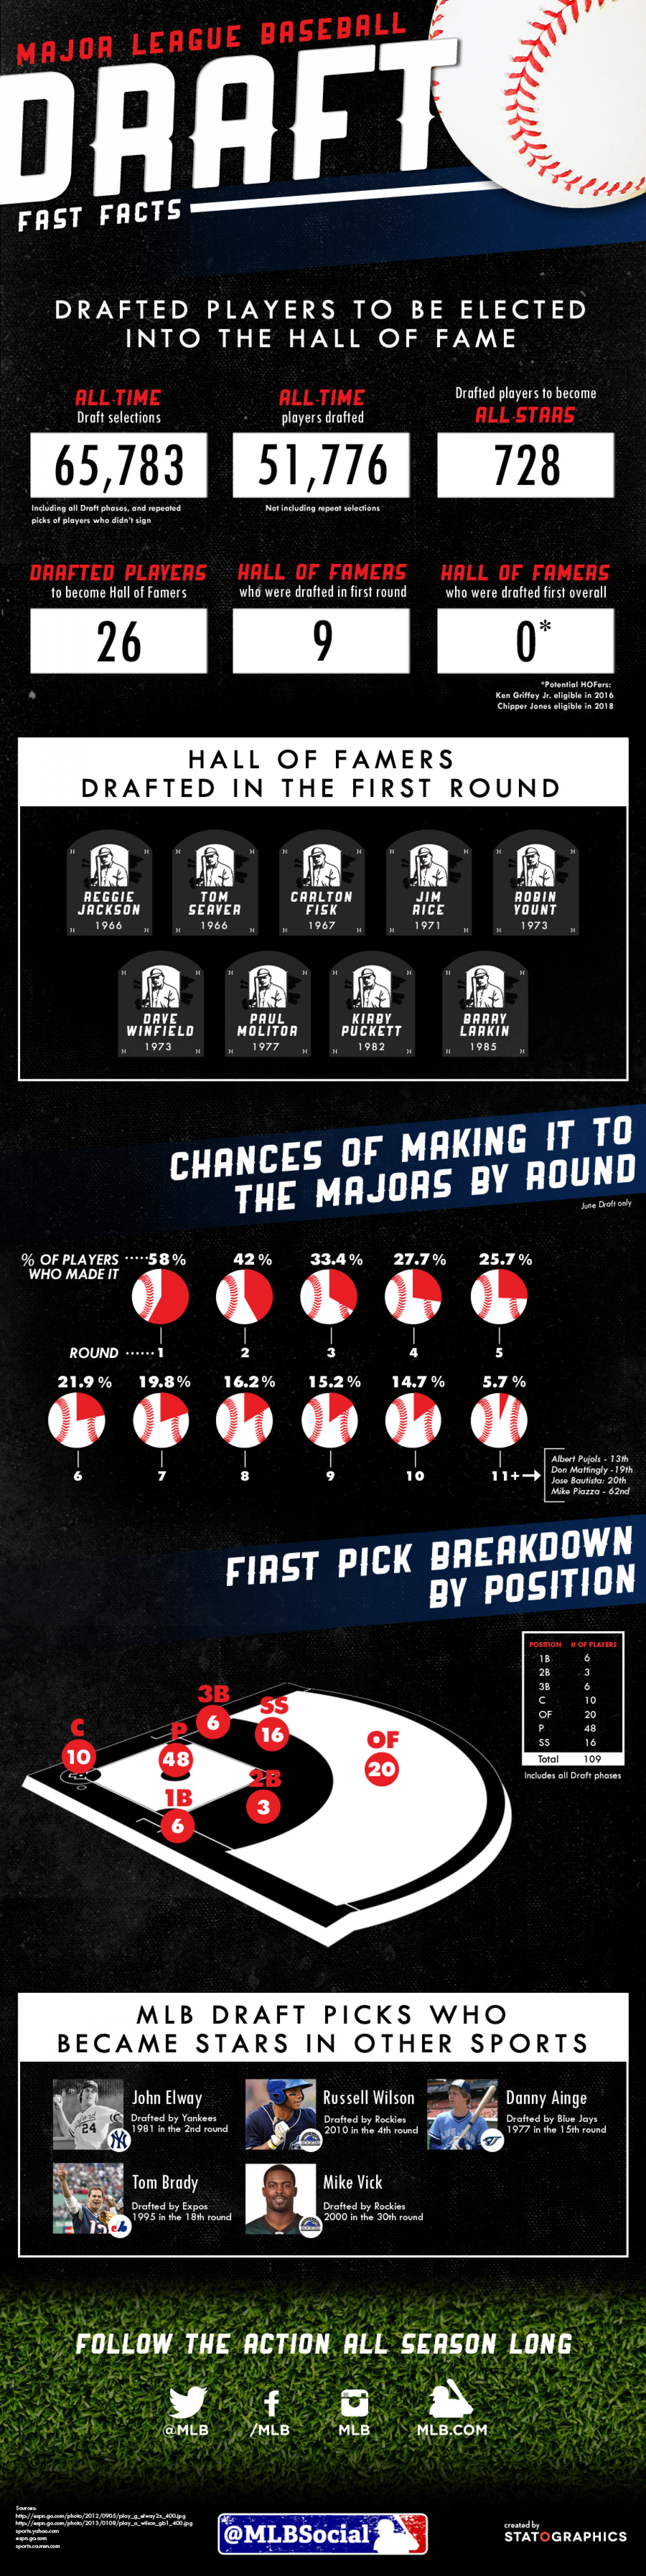 MLB Draft History Infographic